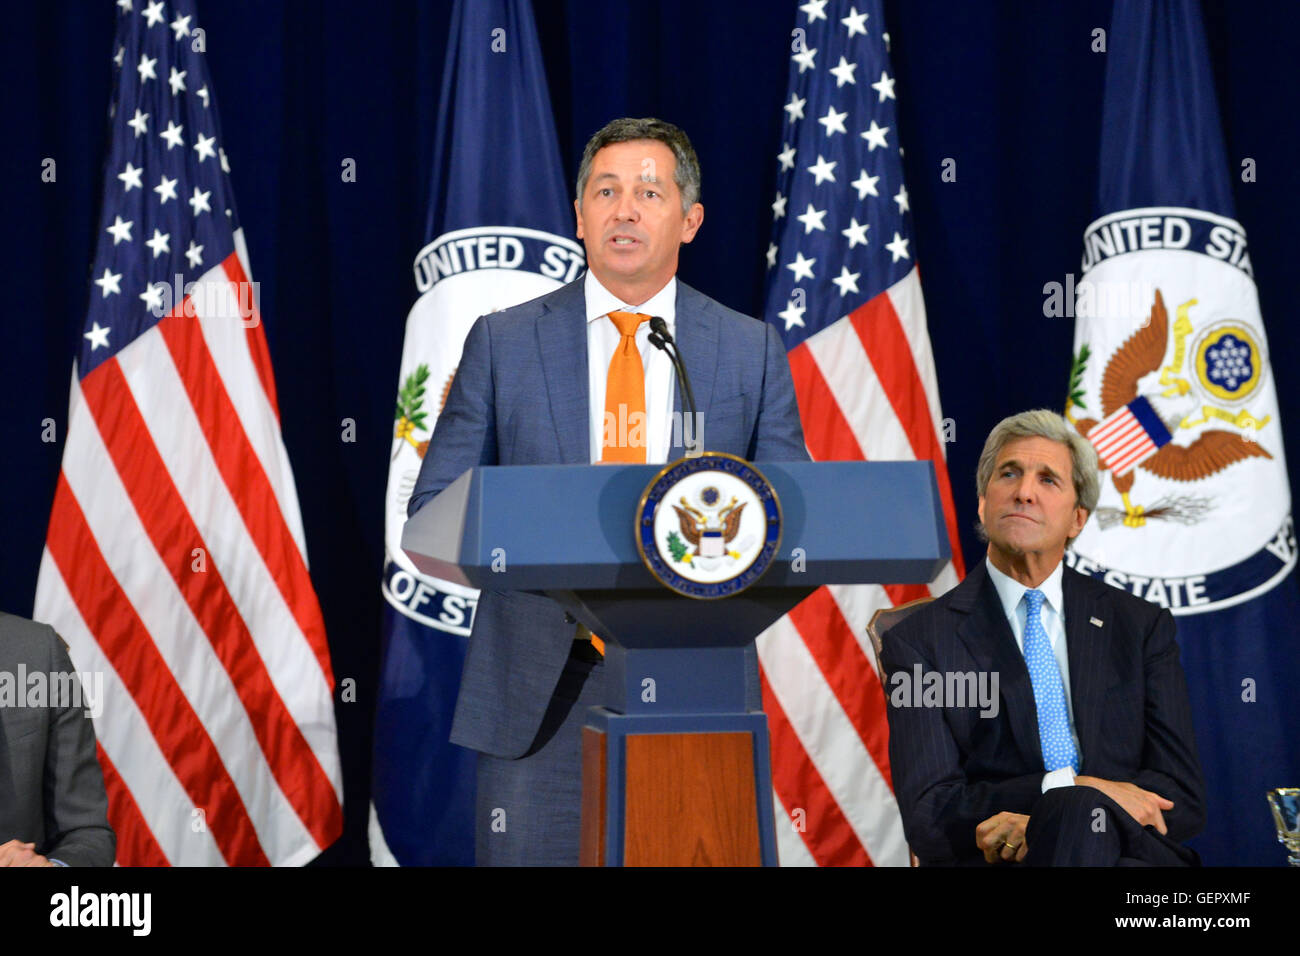 Special Envoy Berry Delivers Remarks at the State Department's 'Pride at State' Event in Washington - Stock Image